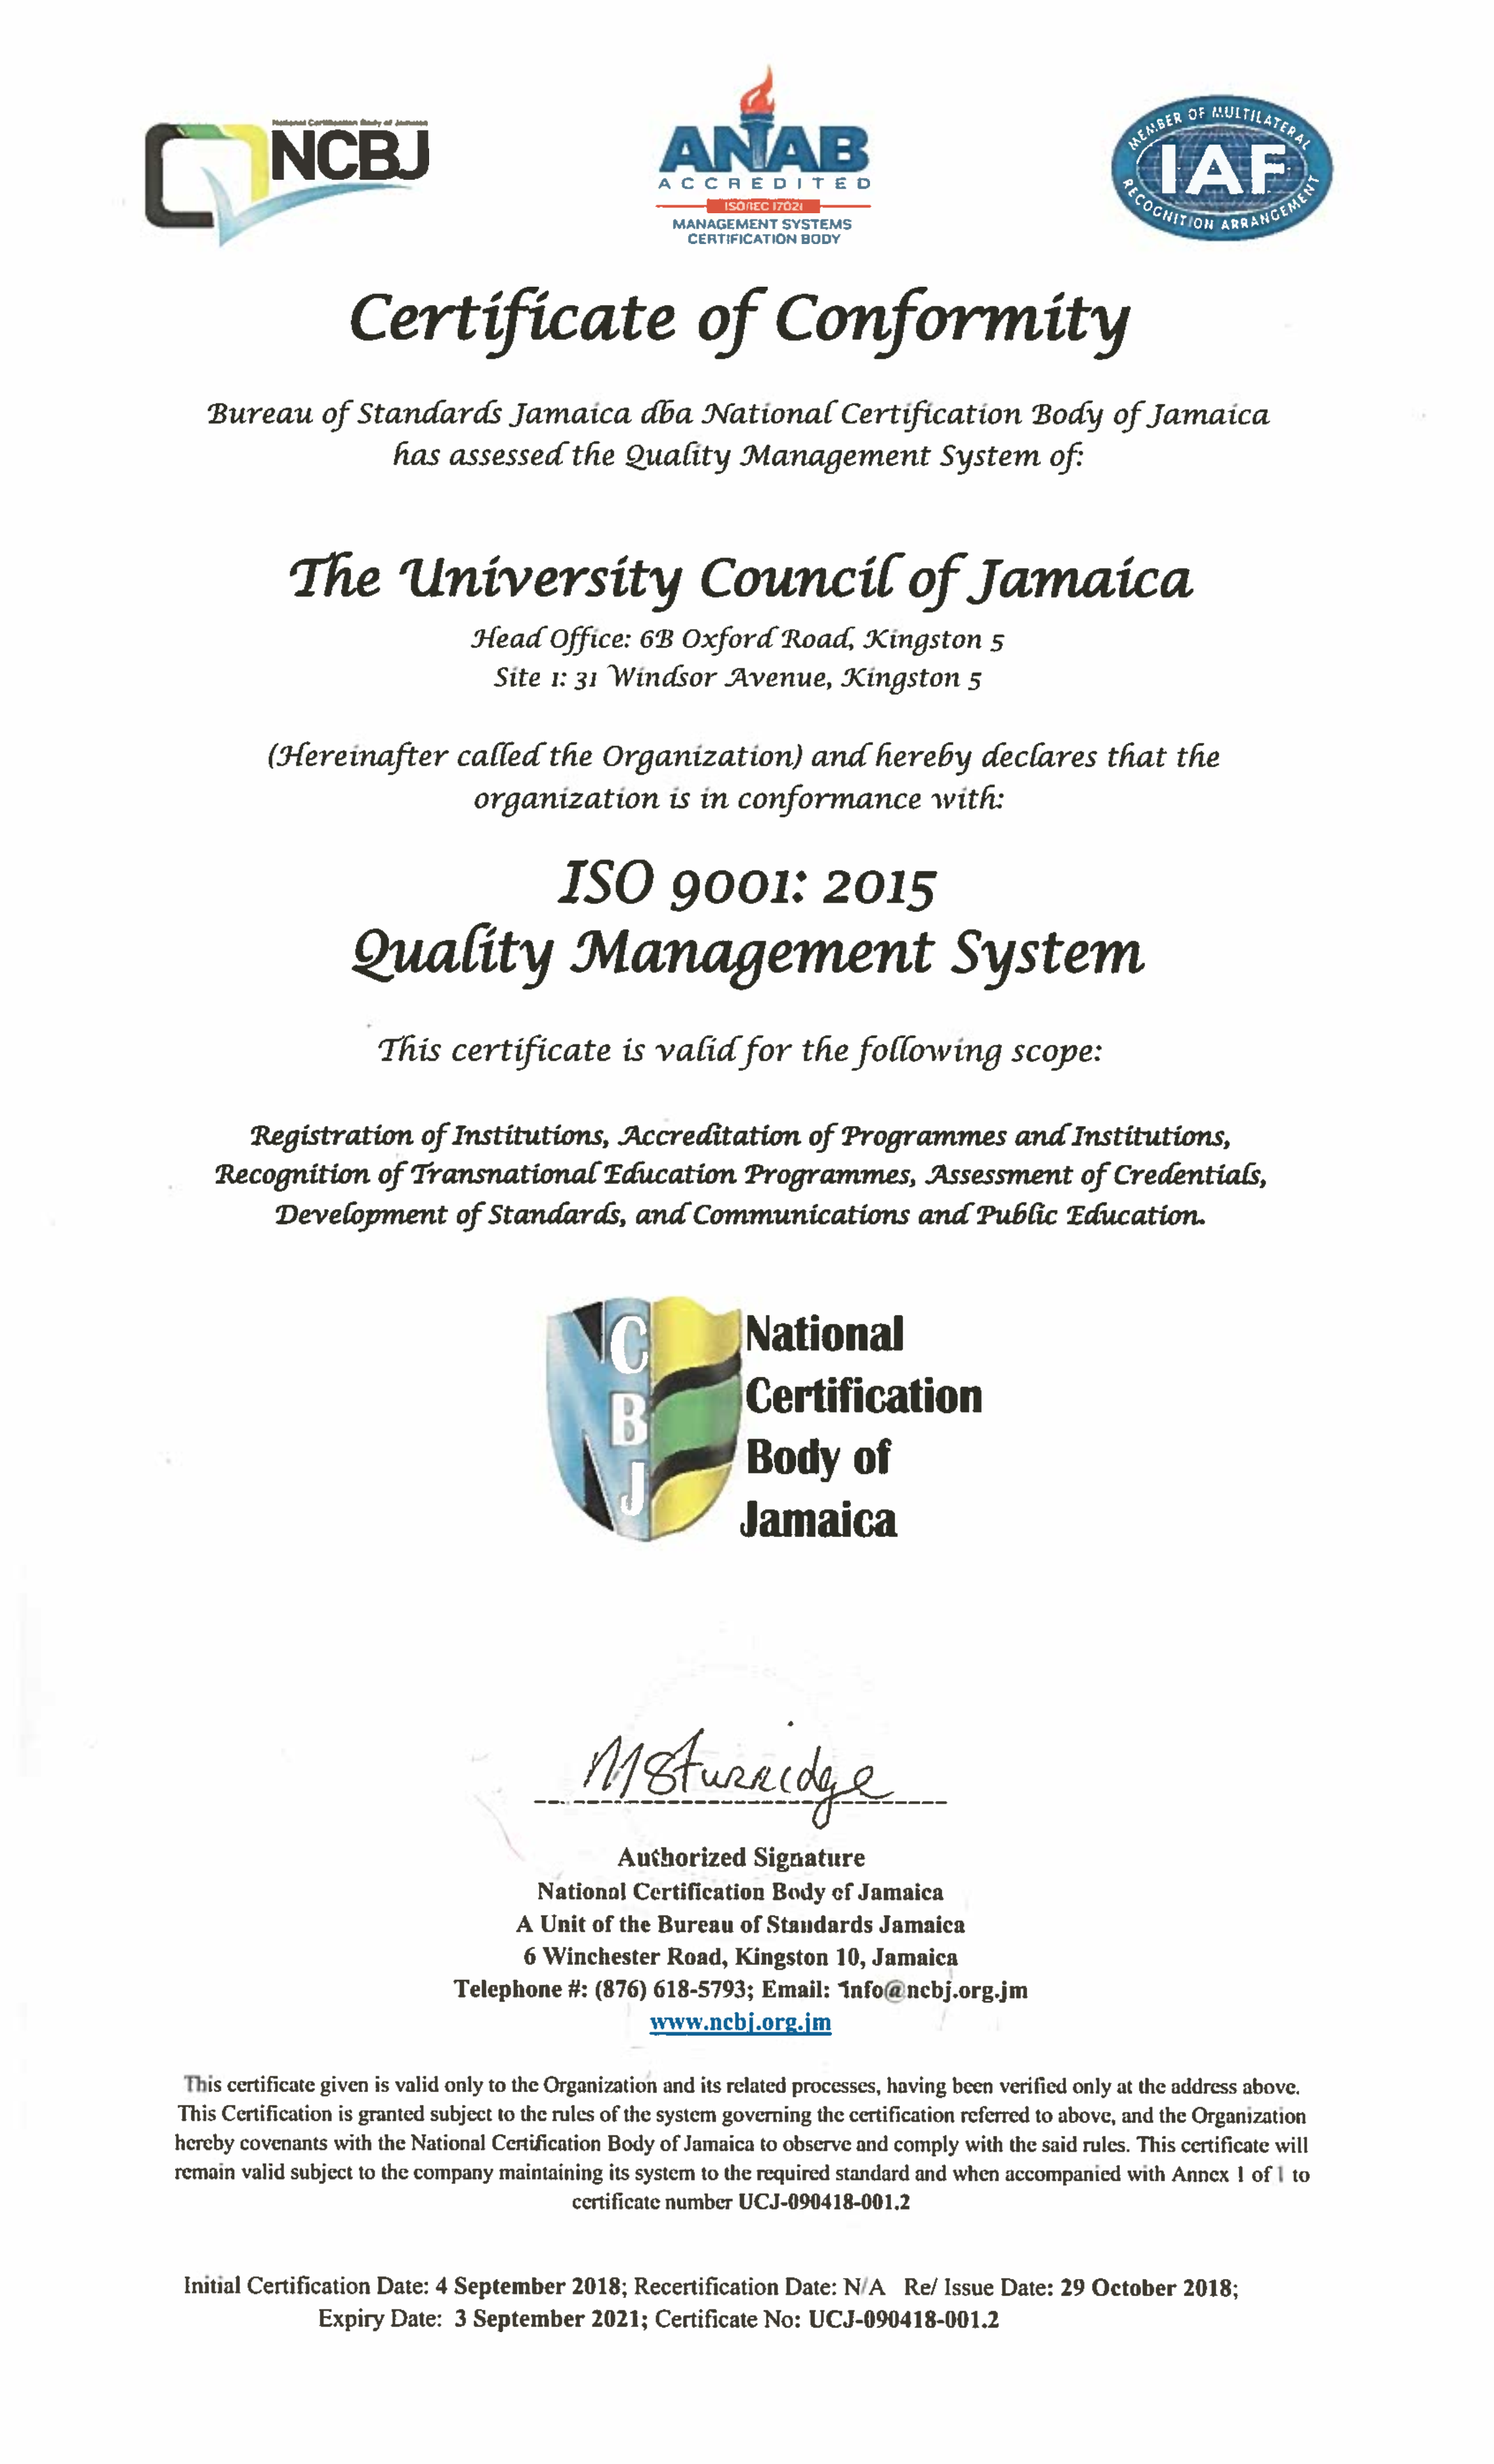 The Ucj Achieves Iso 90012015 Certification The University